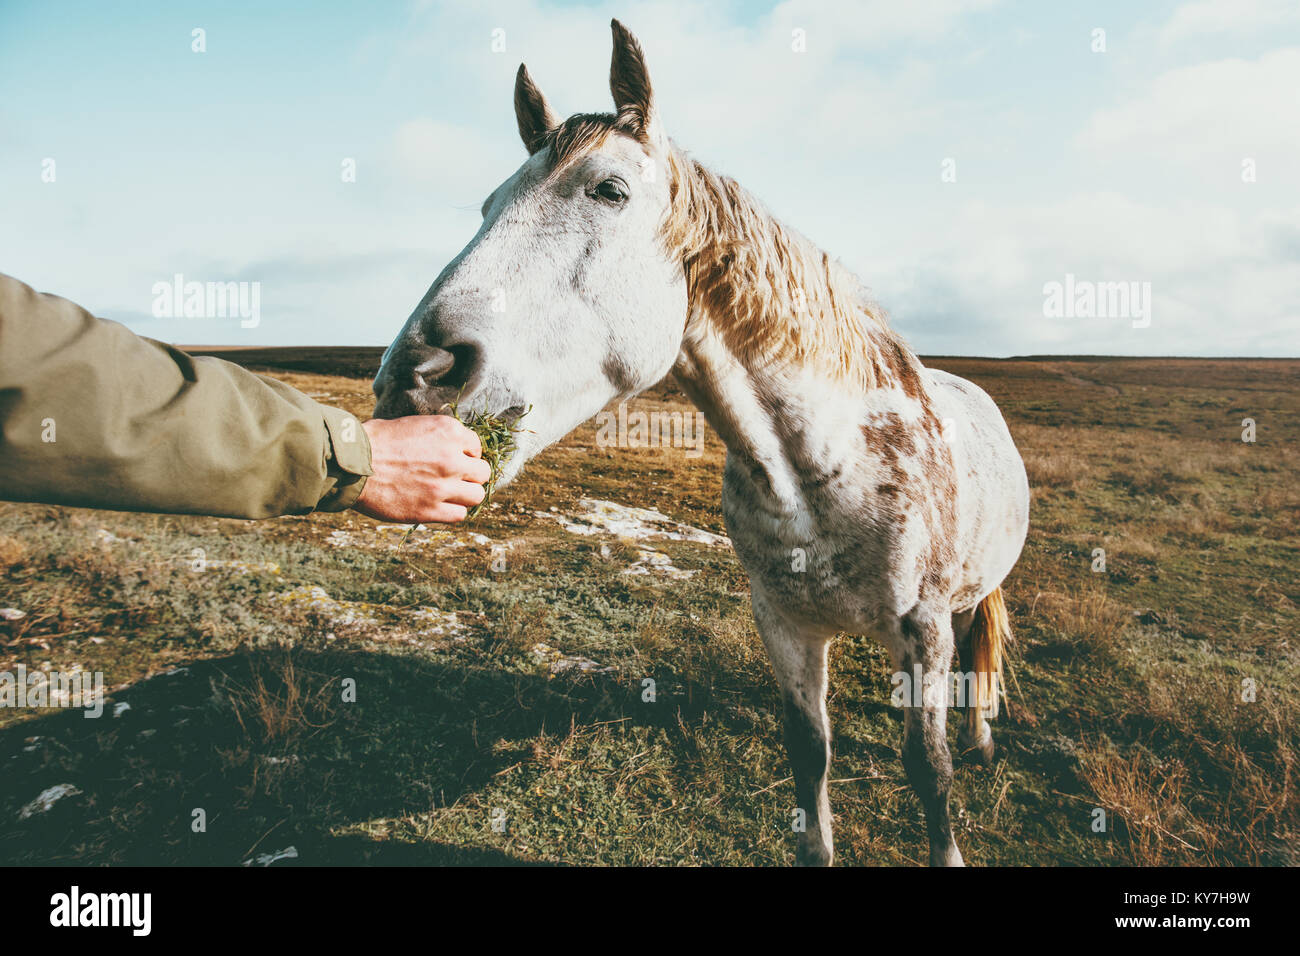 Man hand feeding white horse Lifestyle animal and people friendship Travel concept - Stock Image